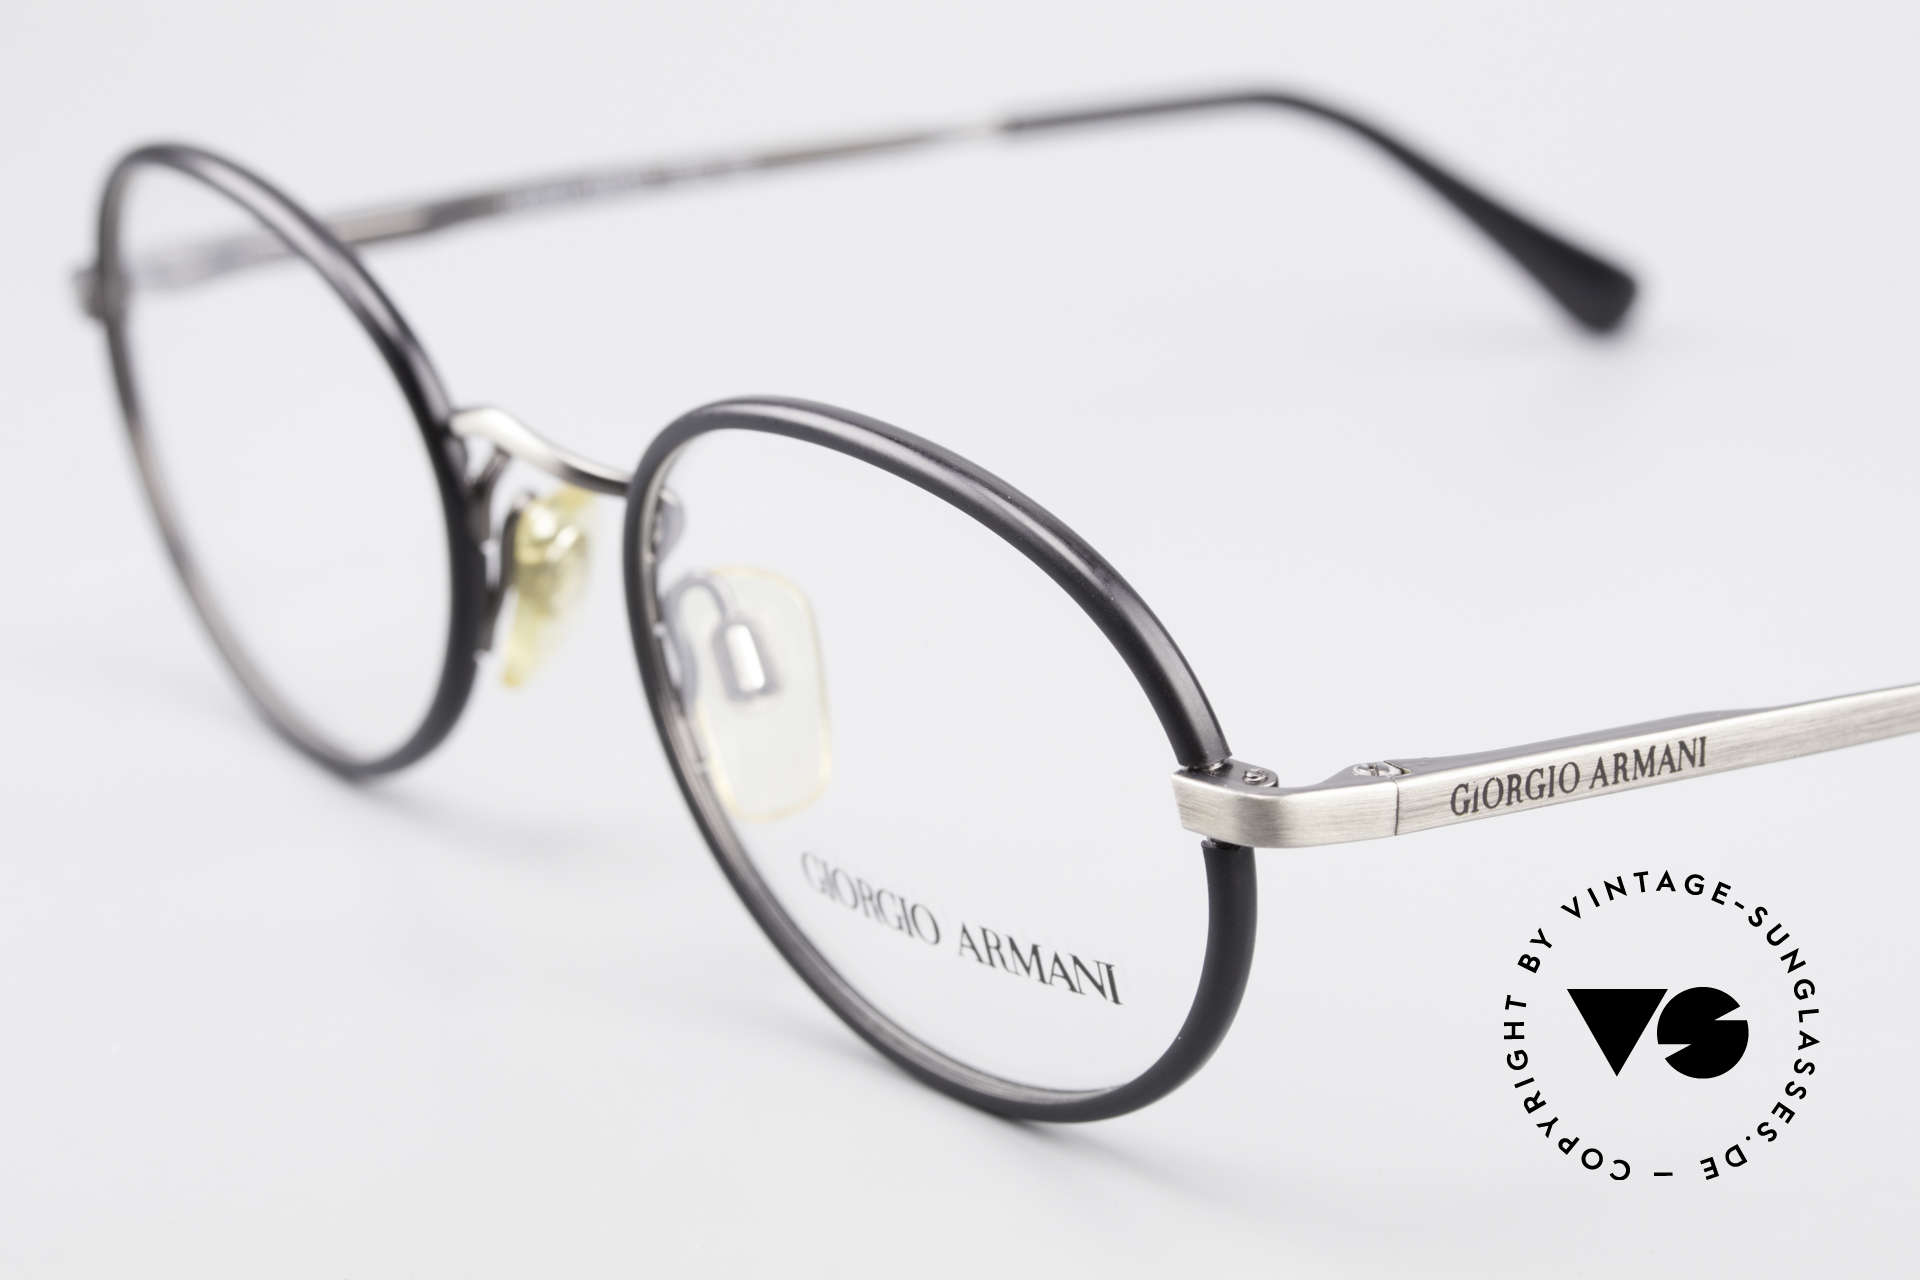 Giorgio Armani 235 Oval Vintage 80's Eyeglasses, never worn (like all our vintage 1980's Armani frames), Made for Men and Women